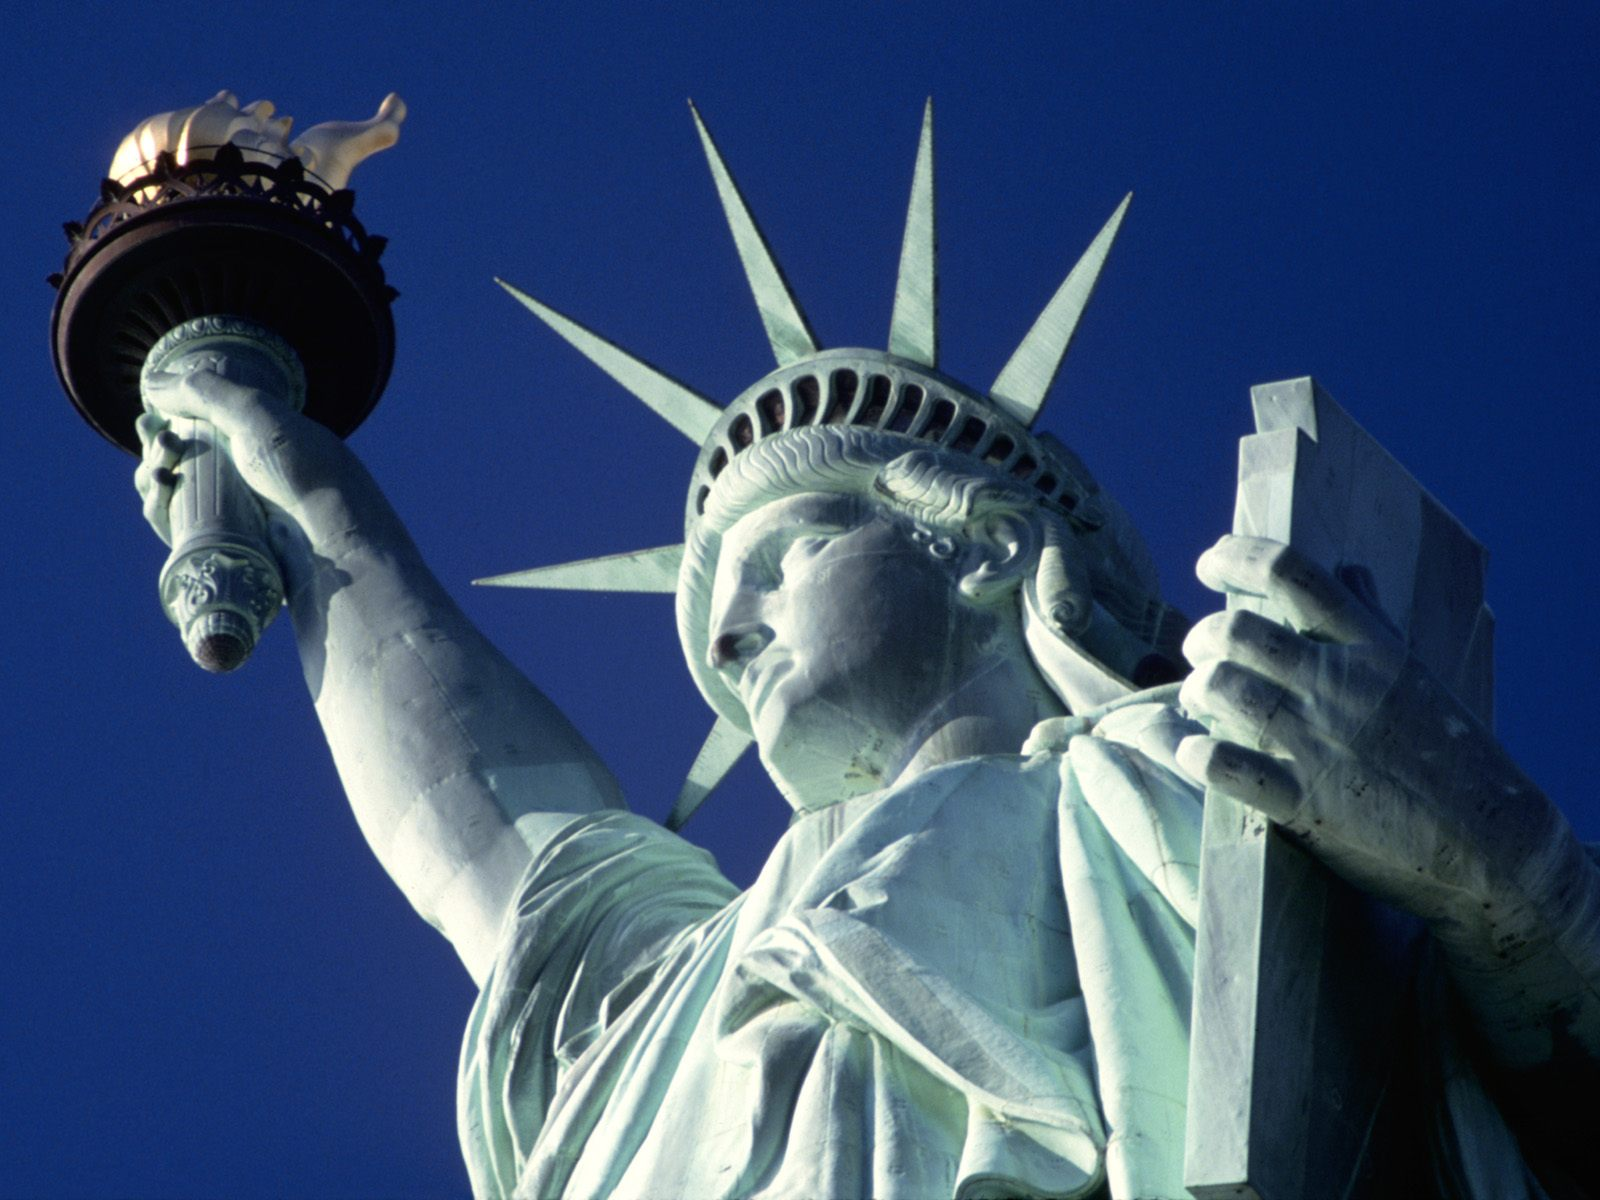 http://www.twintravelconcepts.com/wp-content/uploads/2013/02/statue-of-liberty.jpg